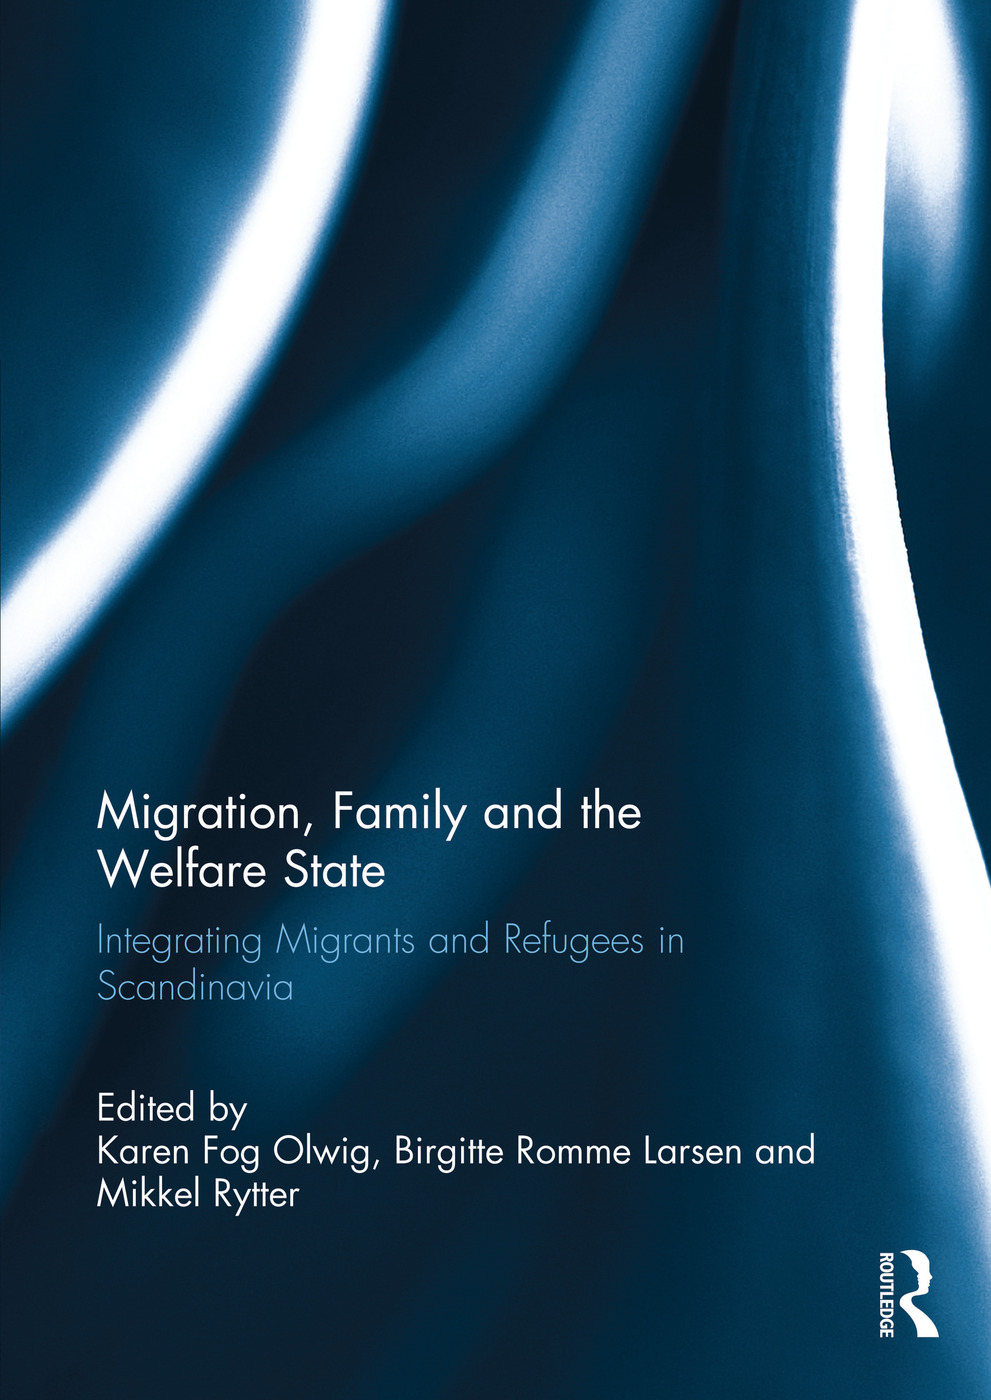 Migration, Family and the Welfare State